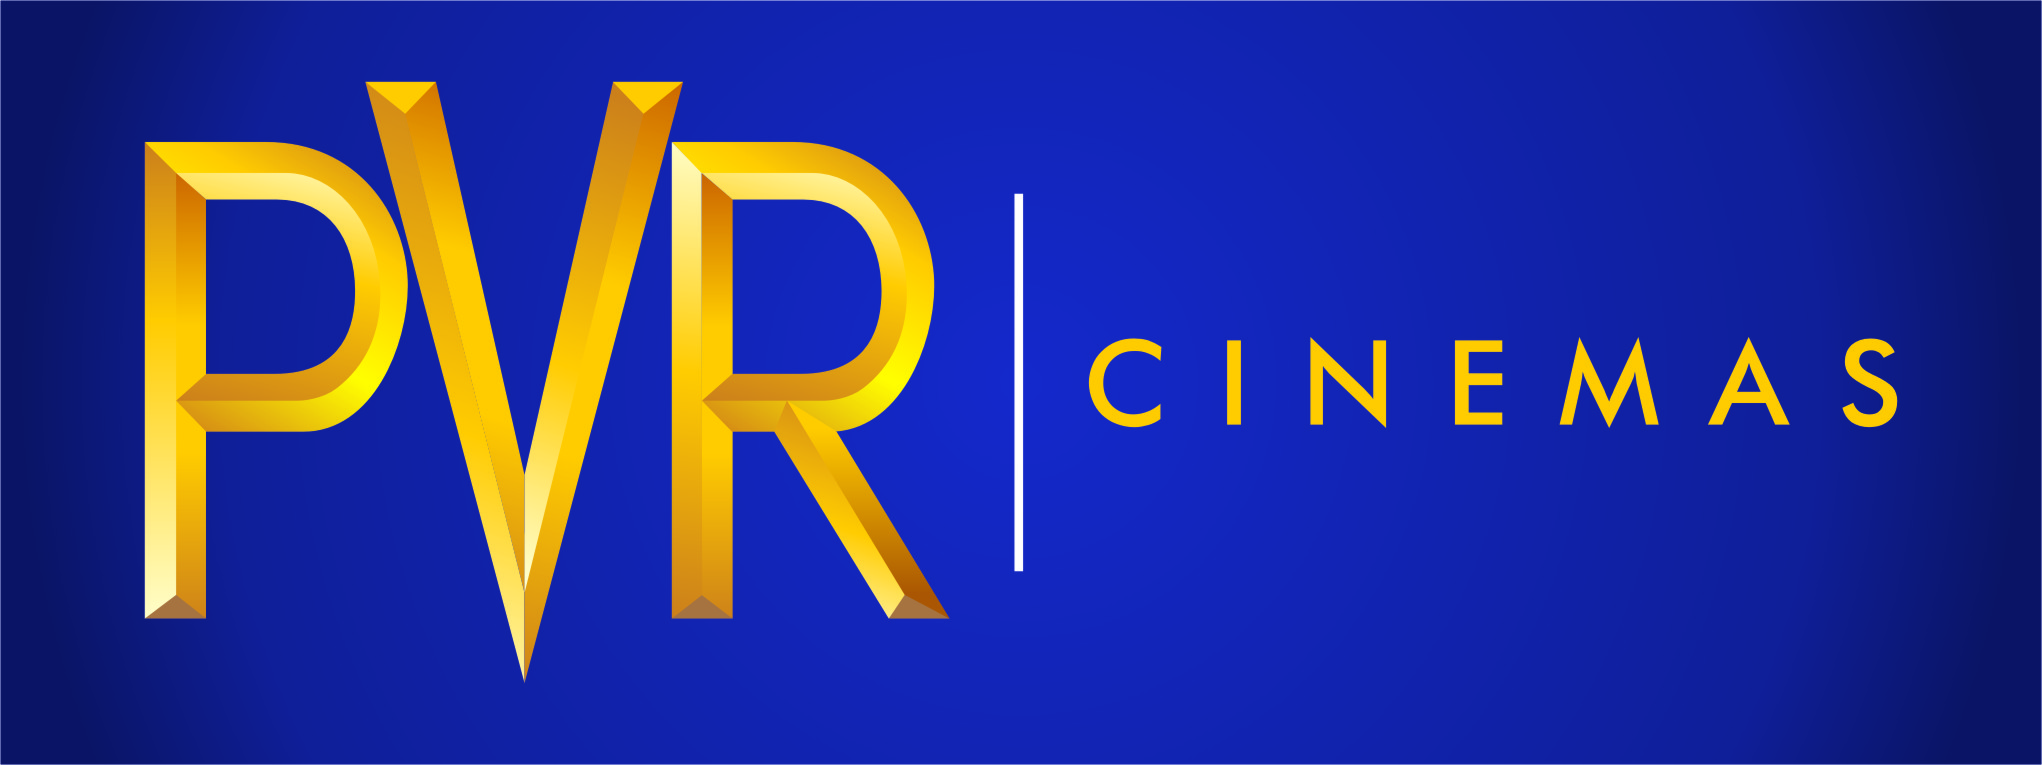 PVR Cinemas ties up with Indian Accelerator for Mentoring the M&E Start-ups